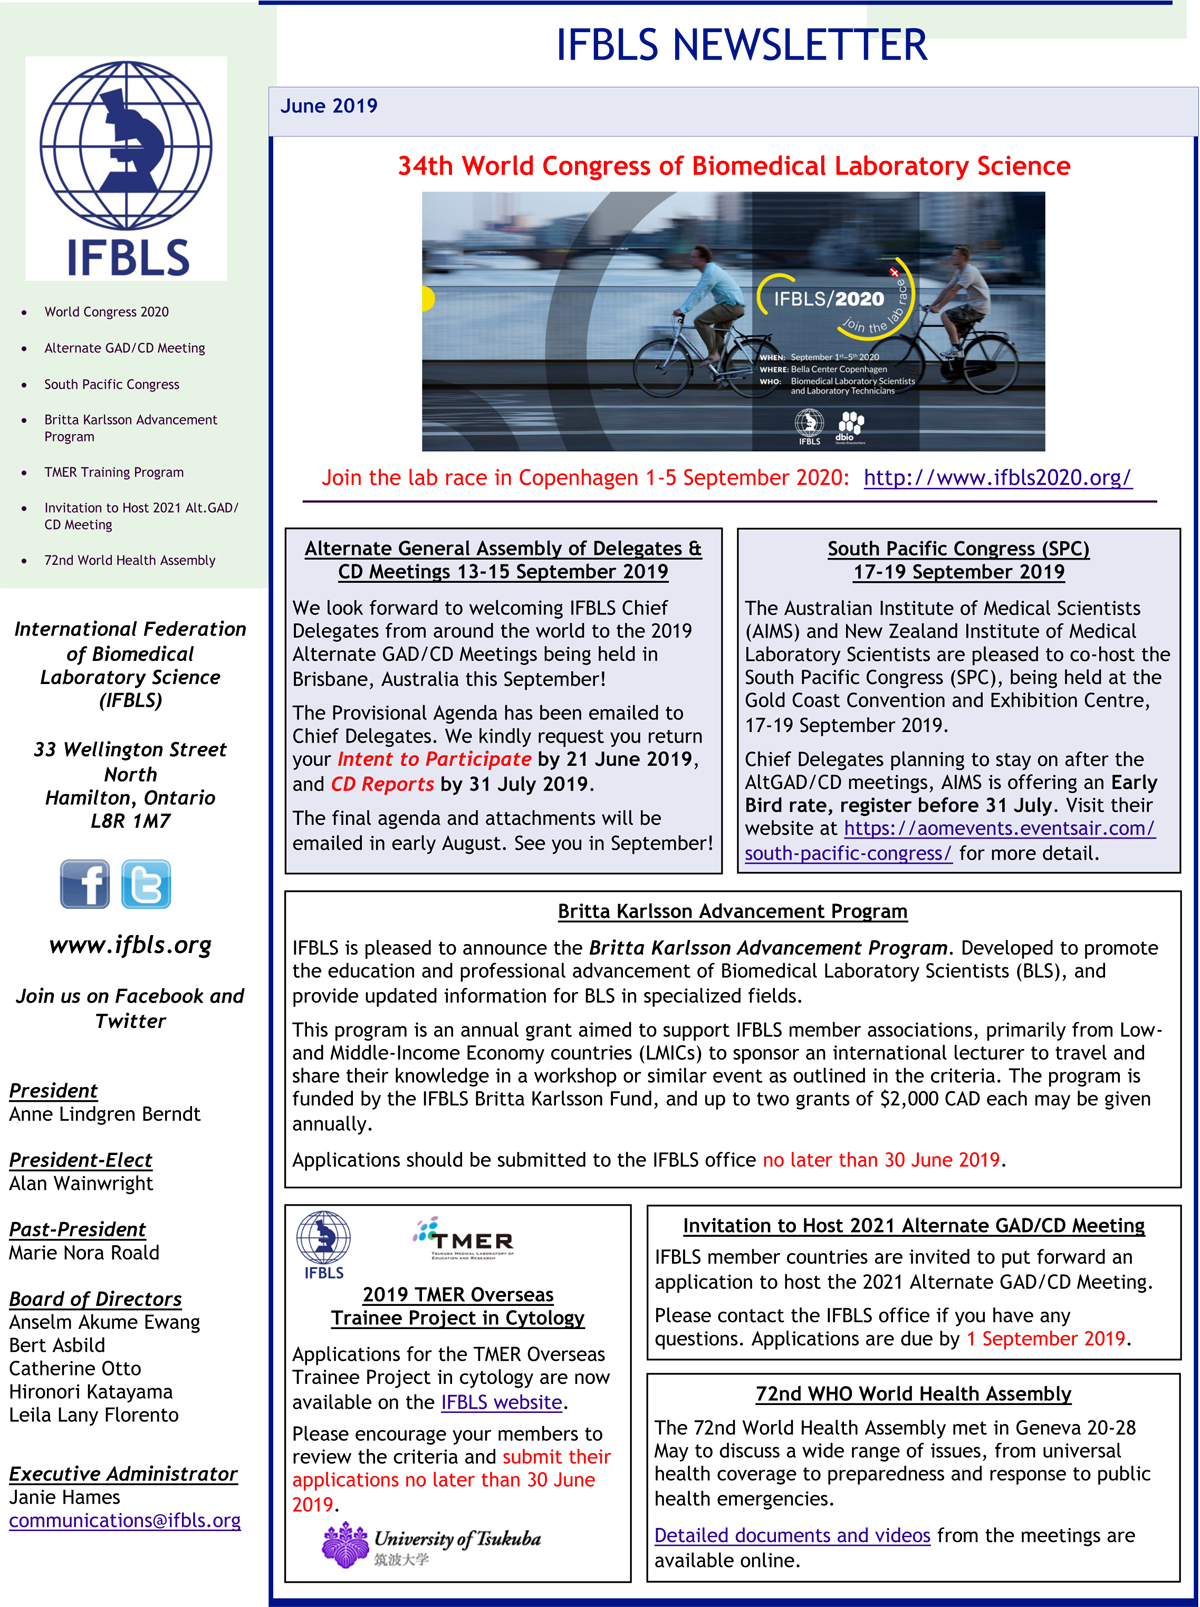 IFBLS Newsletter June 2019